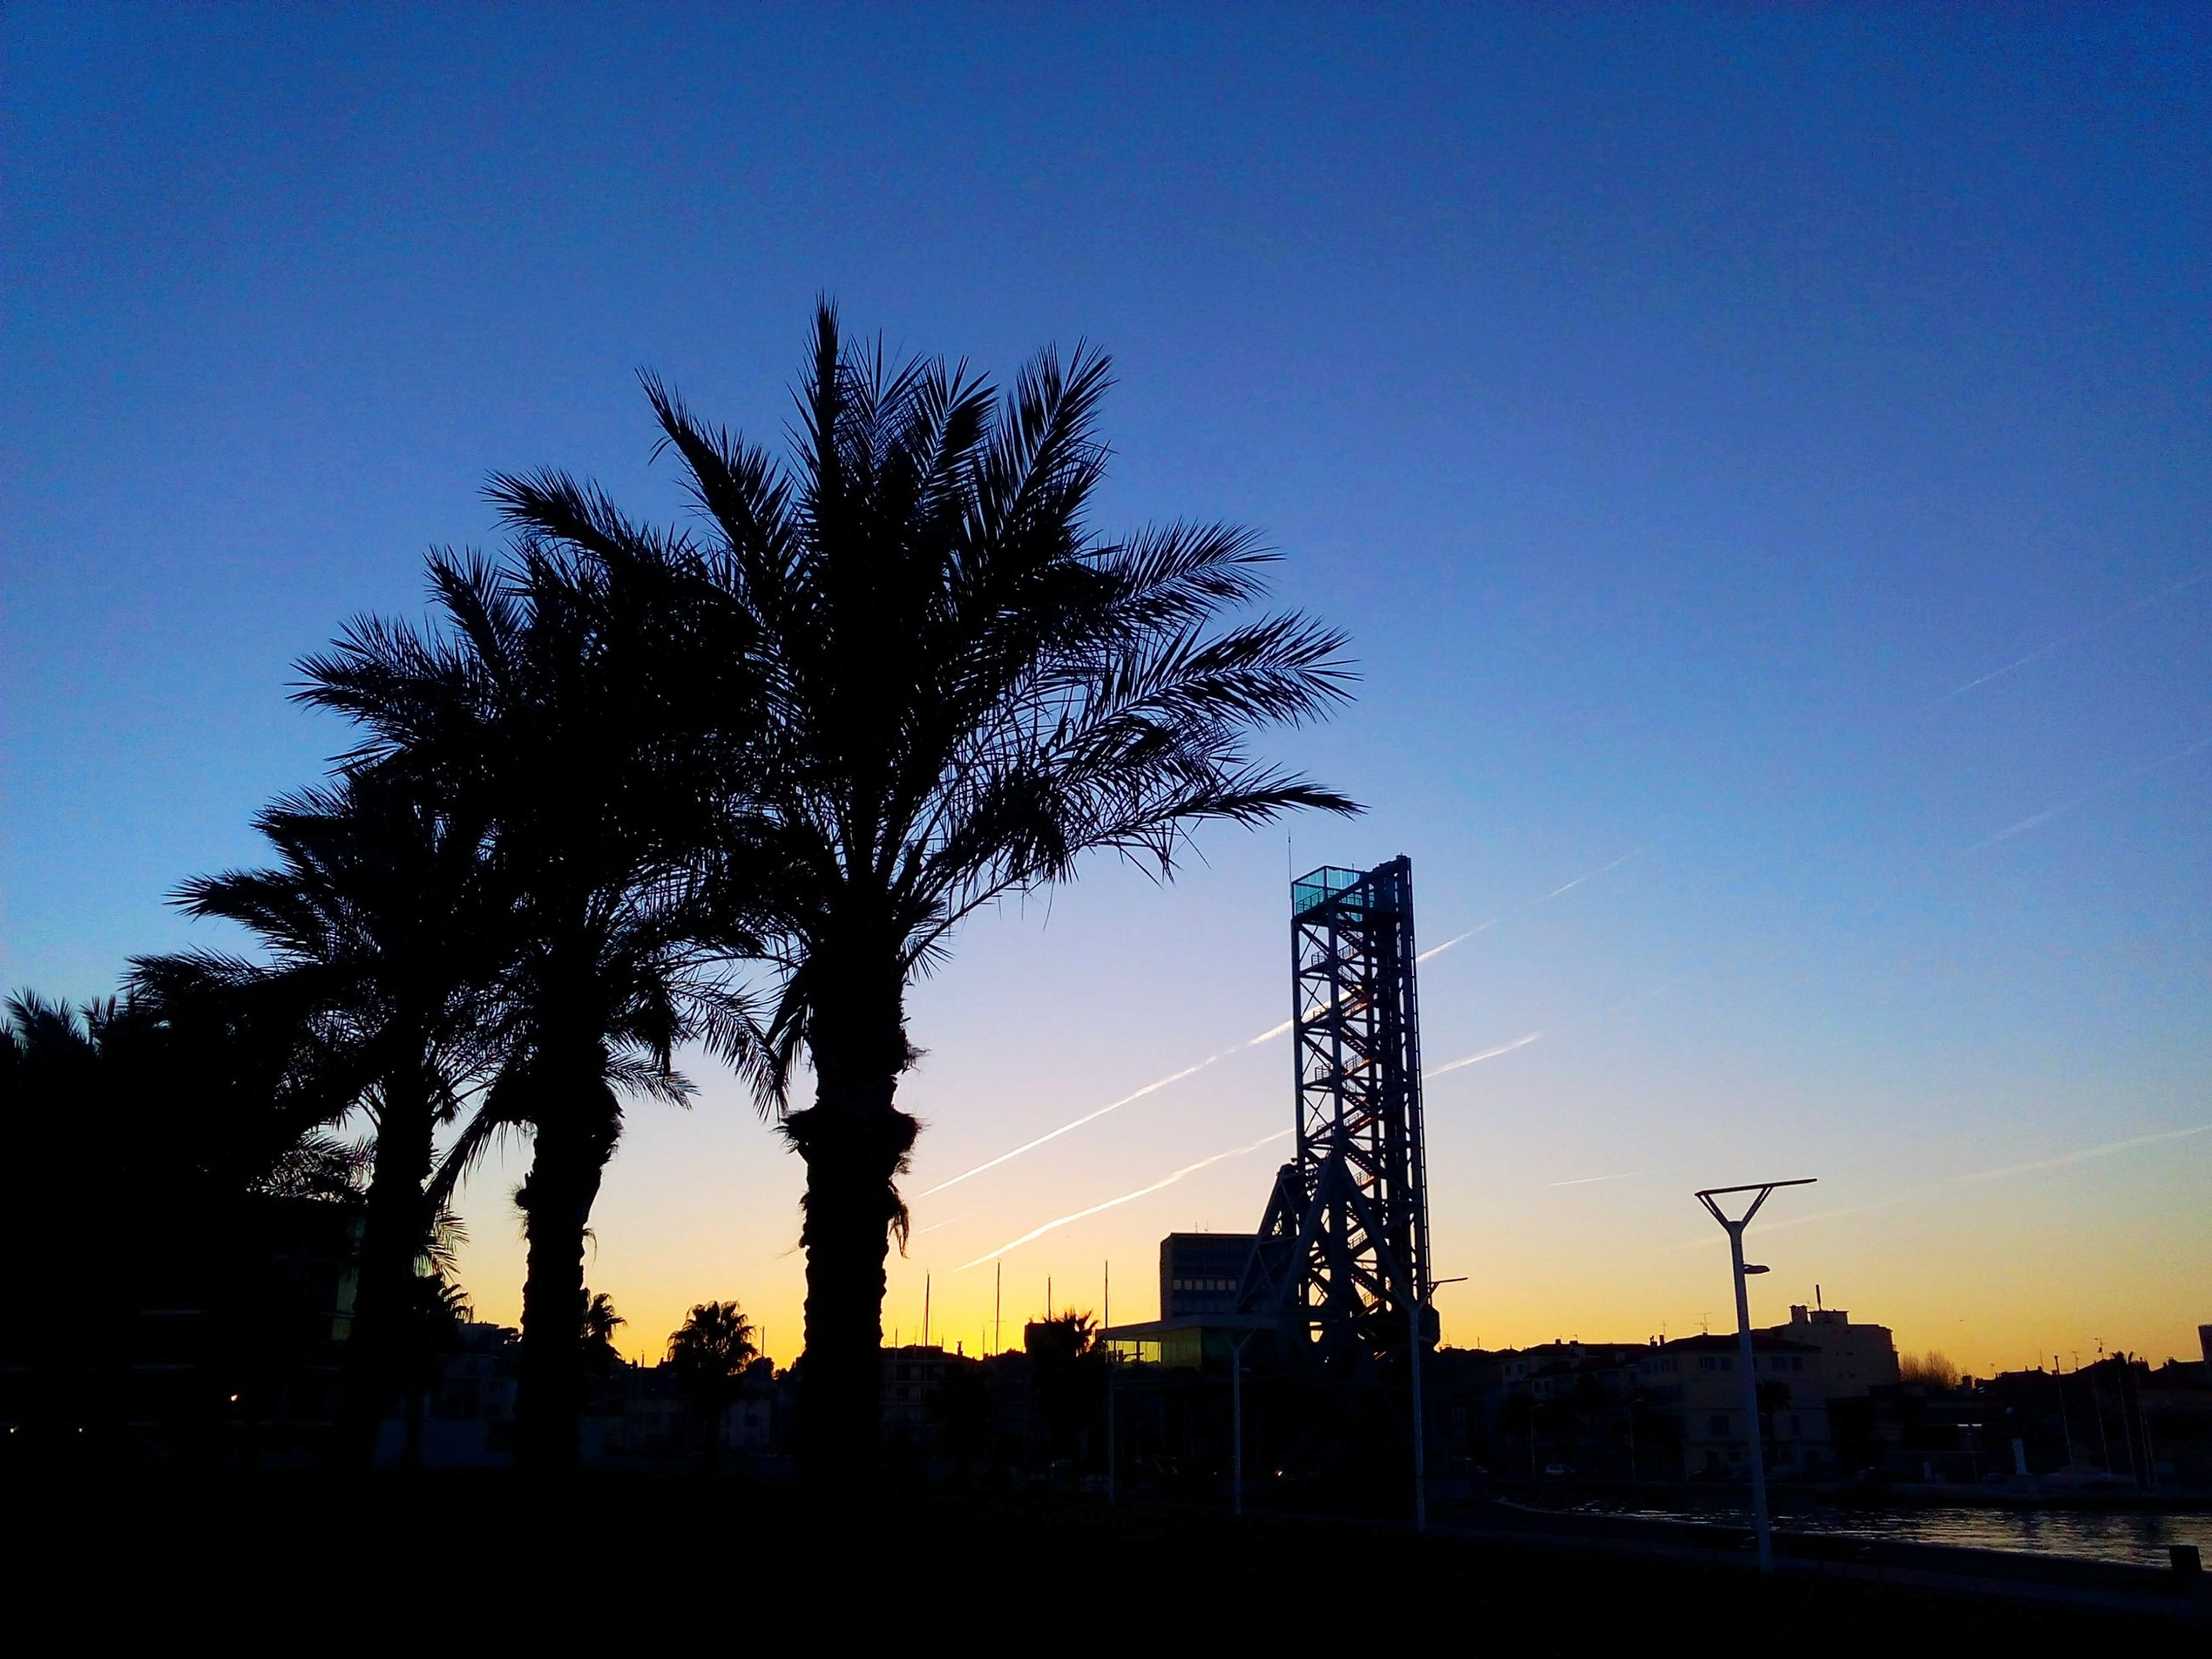 silhouette, sunset, clear sky, blue, copy space, connection, tree, built structure, low angle view, dusk, orange color, nature, architecture, sky, electricity pylon, fuel and power generation, tranquility, outdoors, no people, scenics